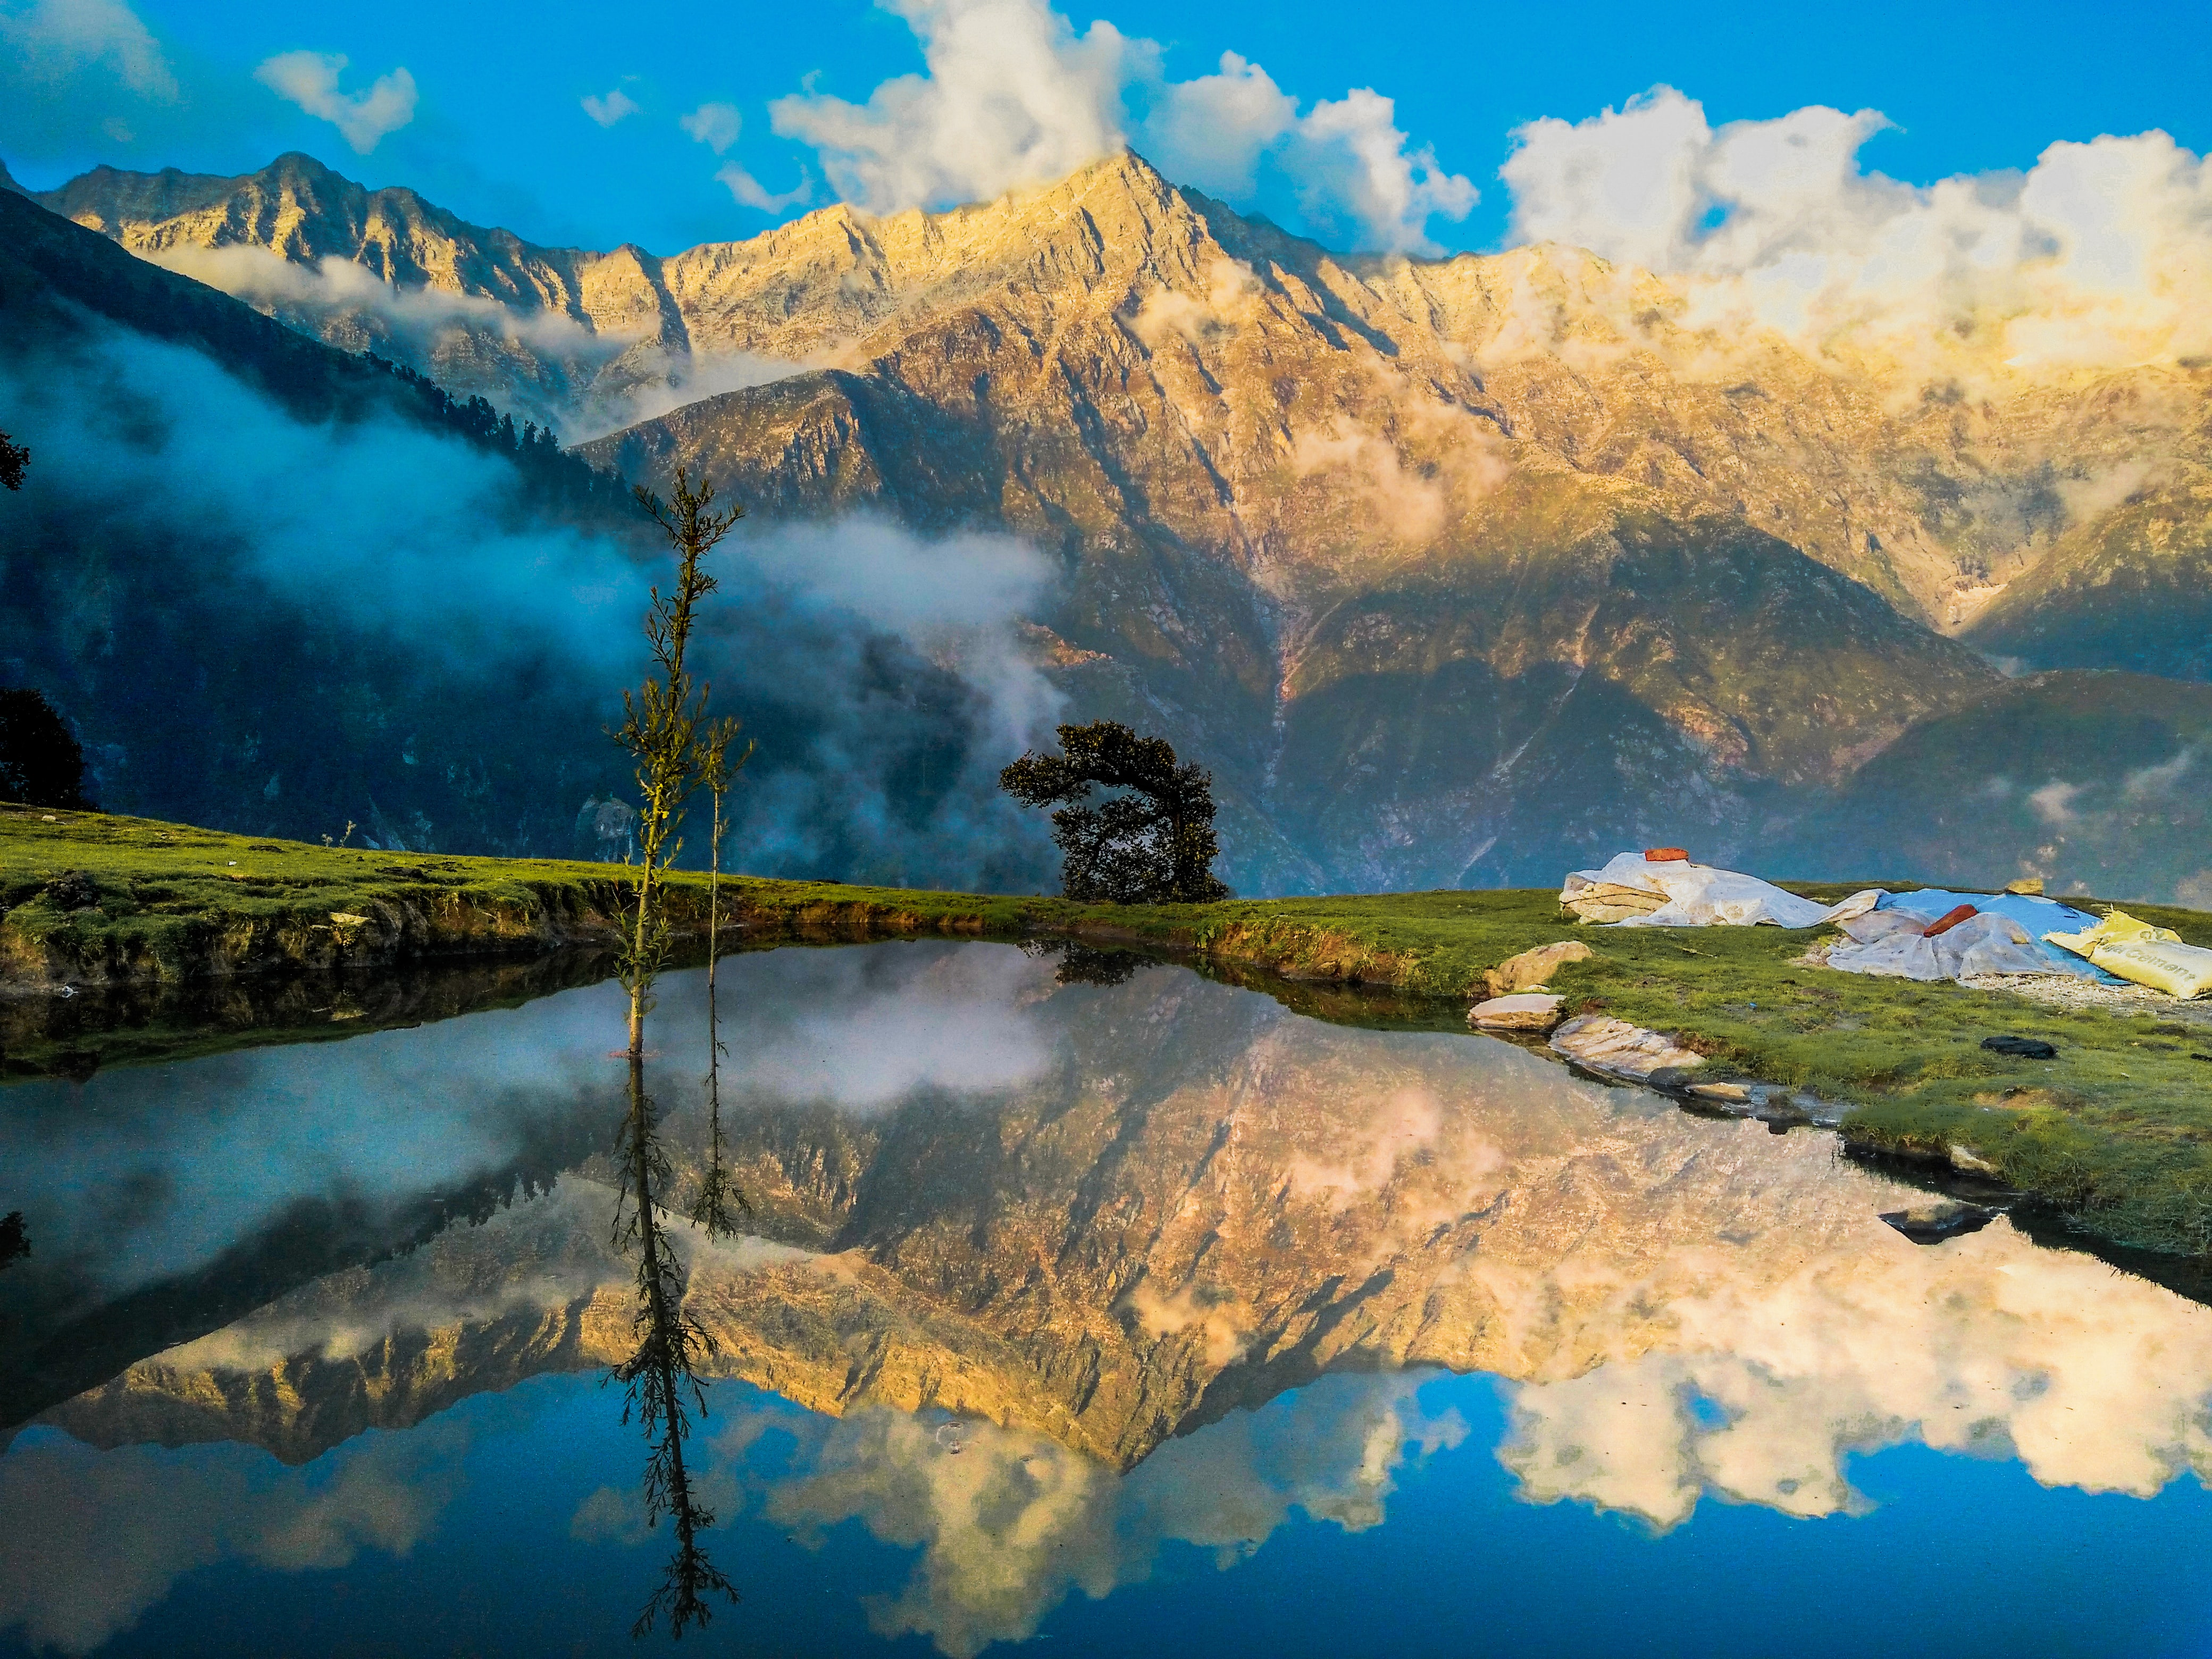 mountain reflecting on body of water